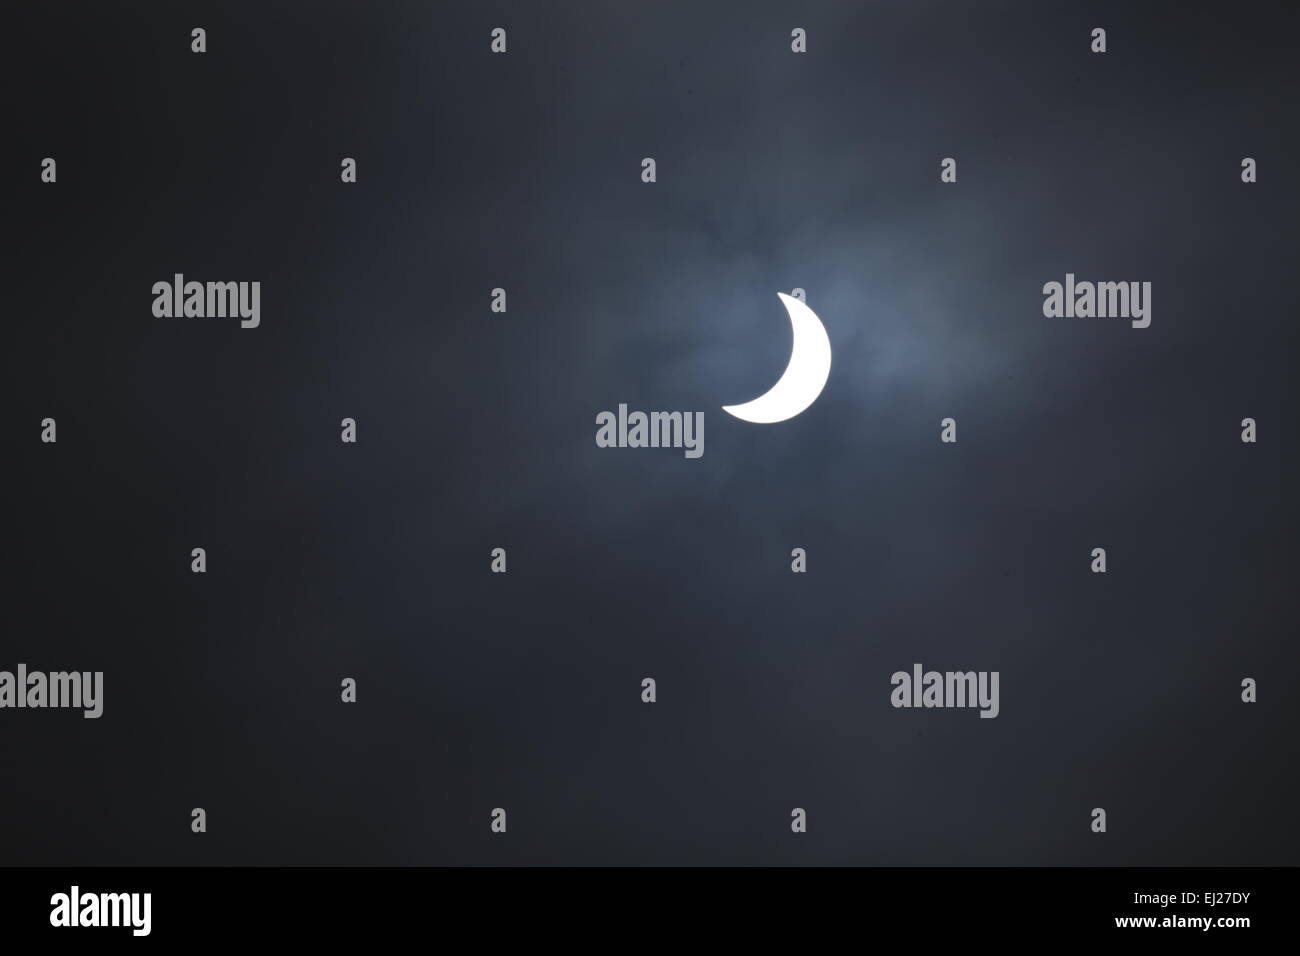 Swindon, Wiltshire, UK. 20th Mar, 2015. Friday, 20th March 2015. A partial solar eclipse taken from Swindon, Wiltshire, - Stock Image